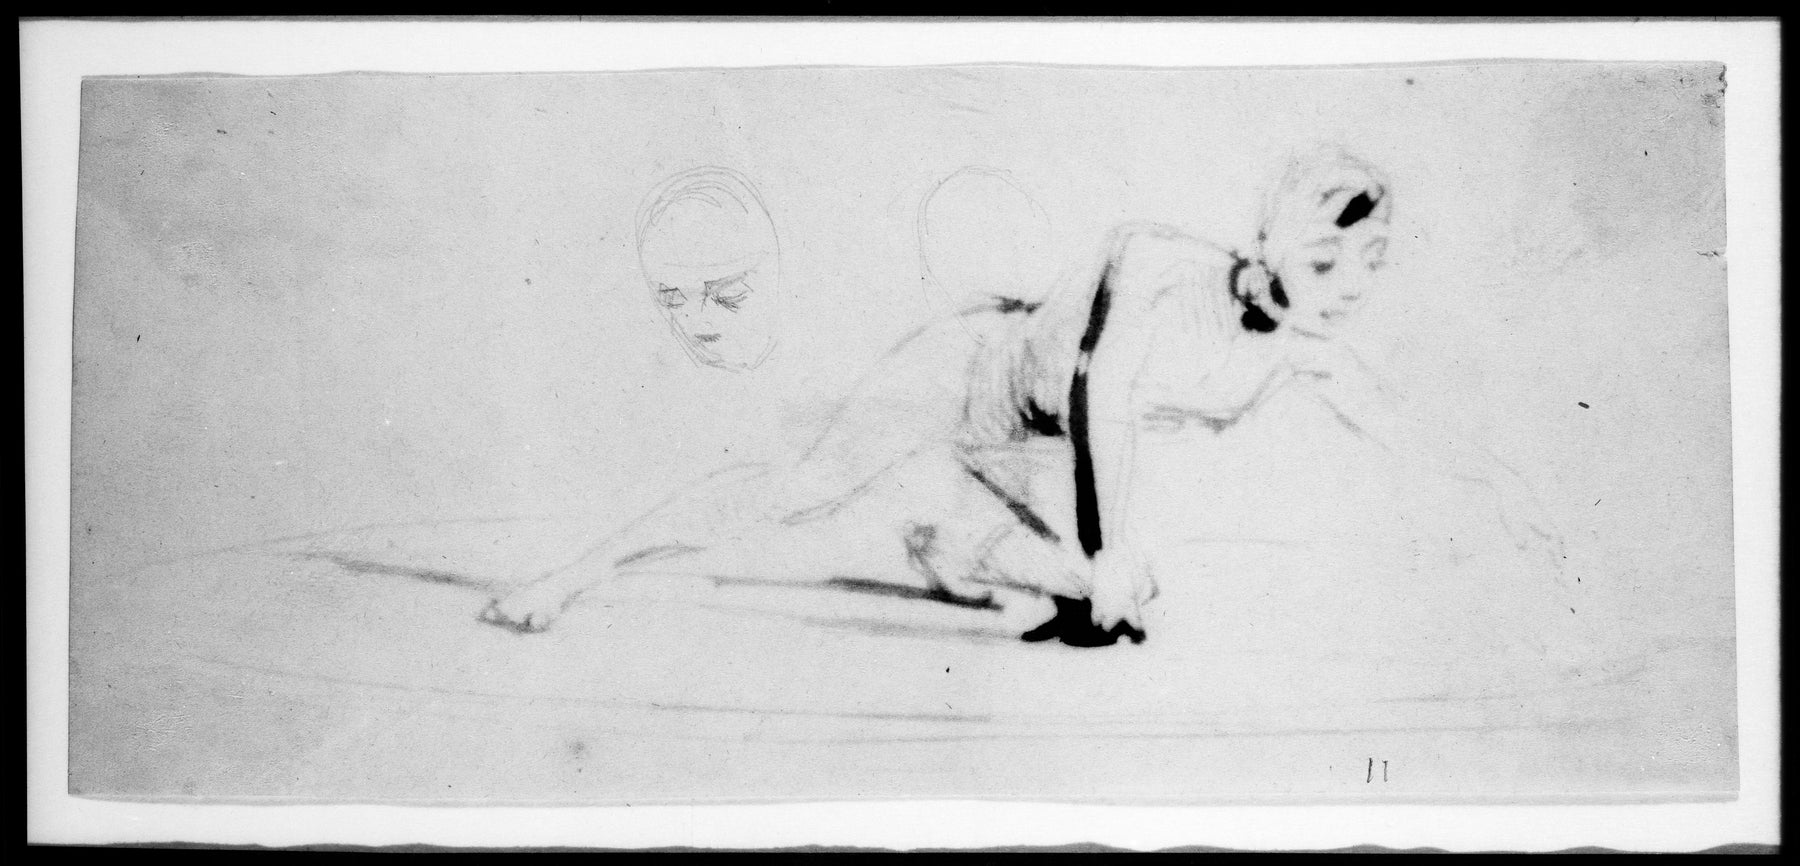 Gladiator (from Sketchbook) by James Abbott McNeill Whistler Reproduction Painting by Blue Surf Art